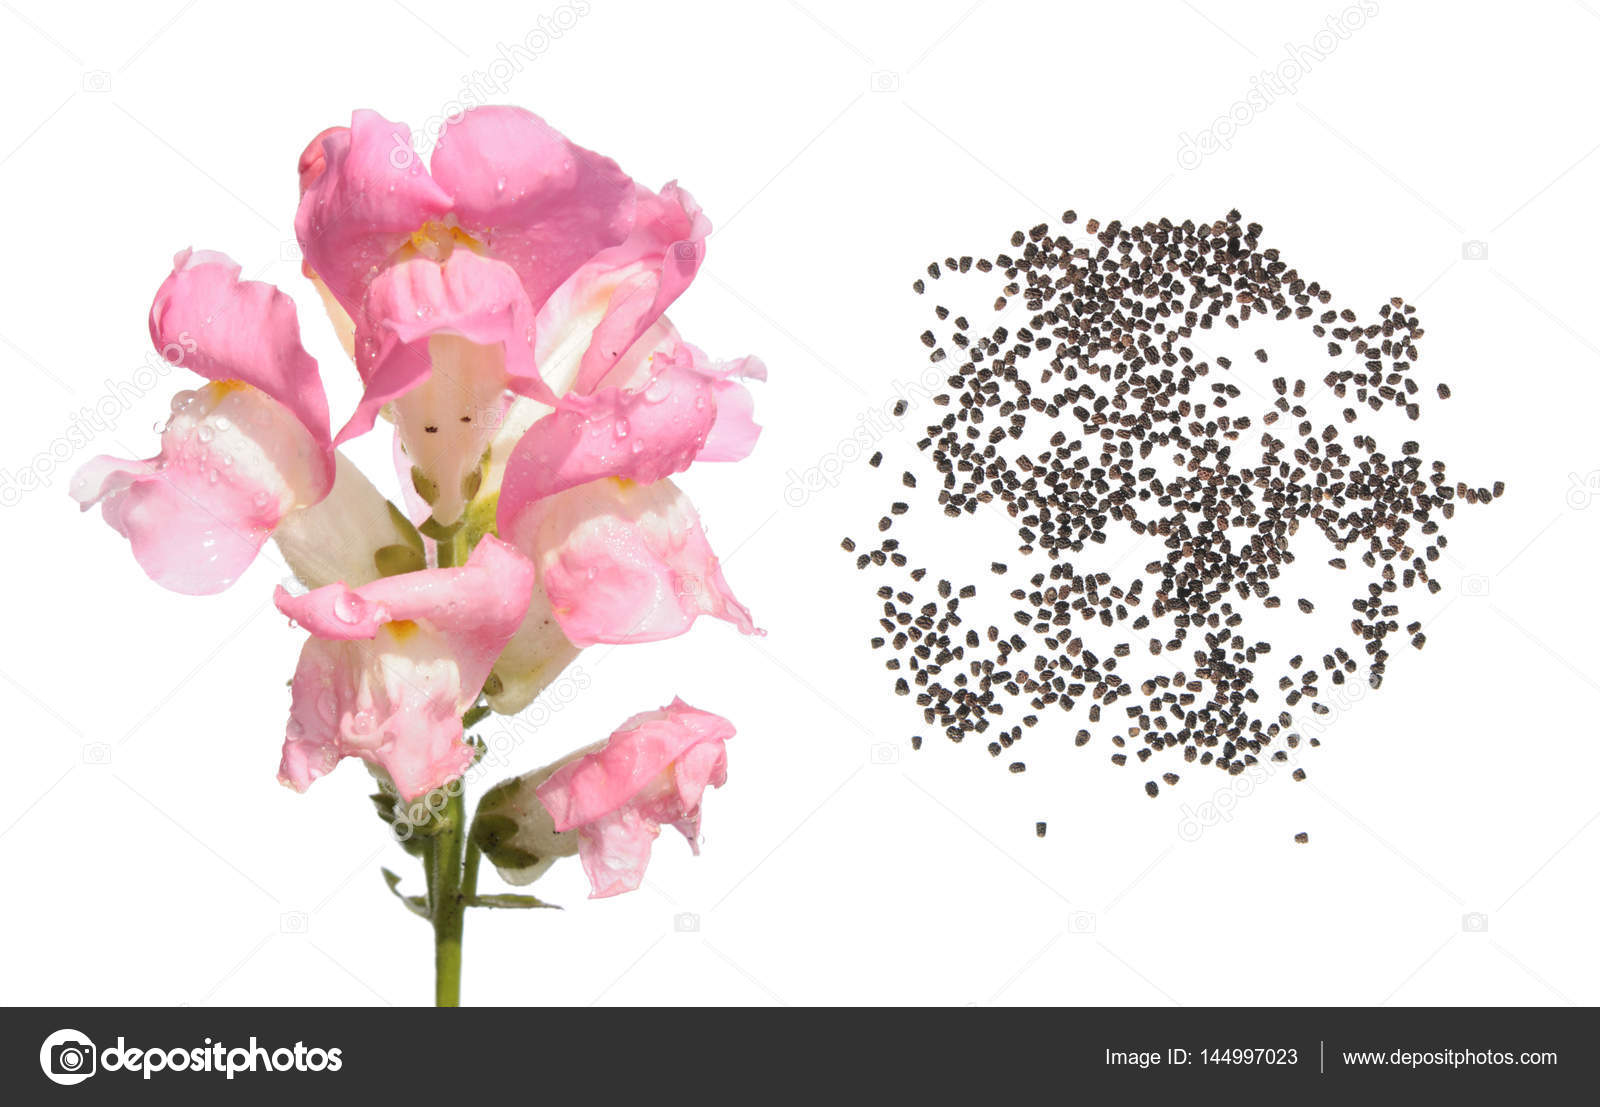 Pink Garden Snapdragon Flower And Seeds Isolated On White